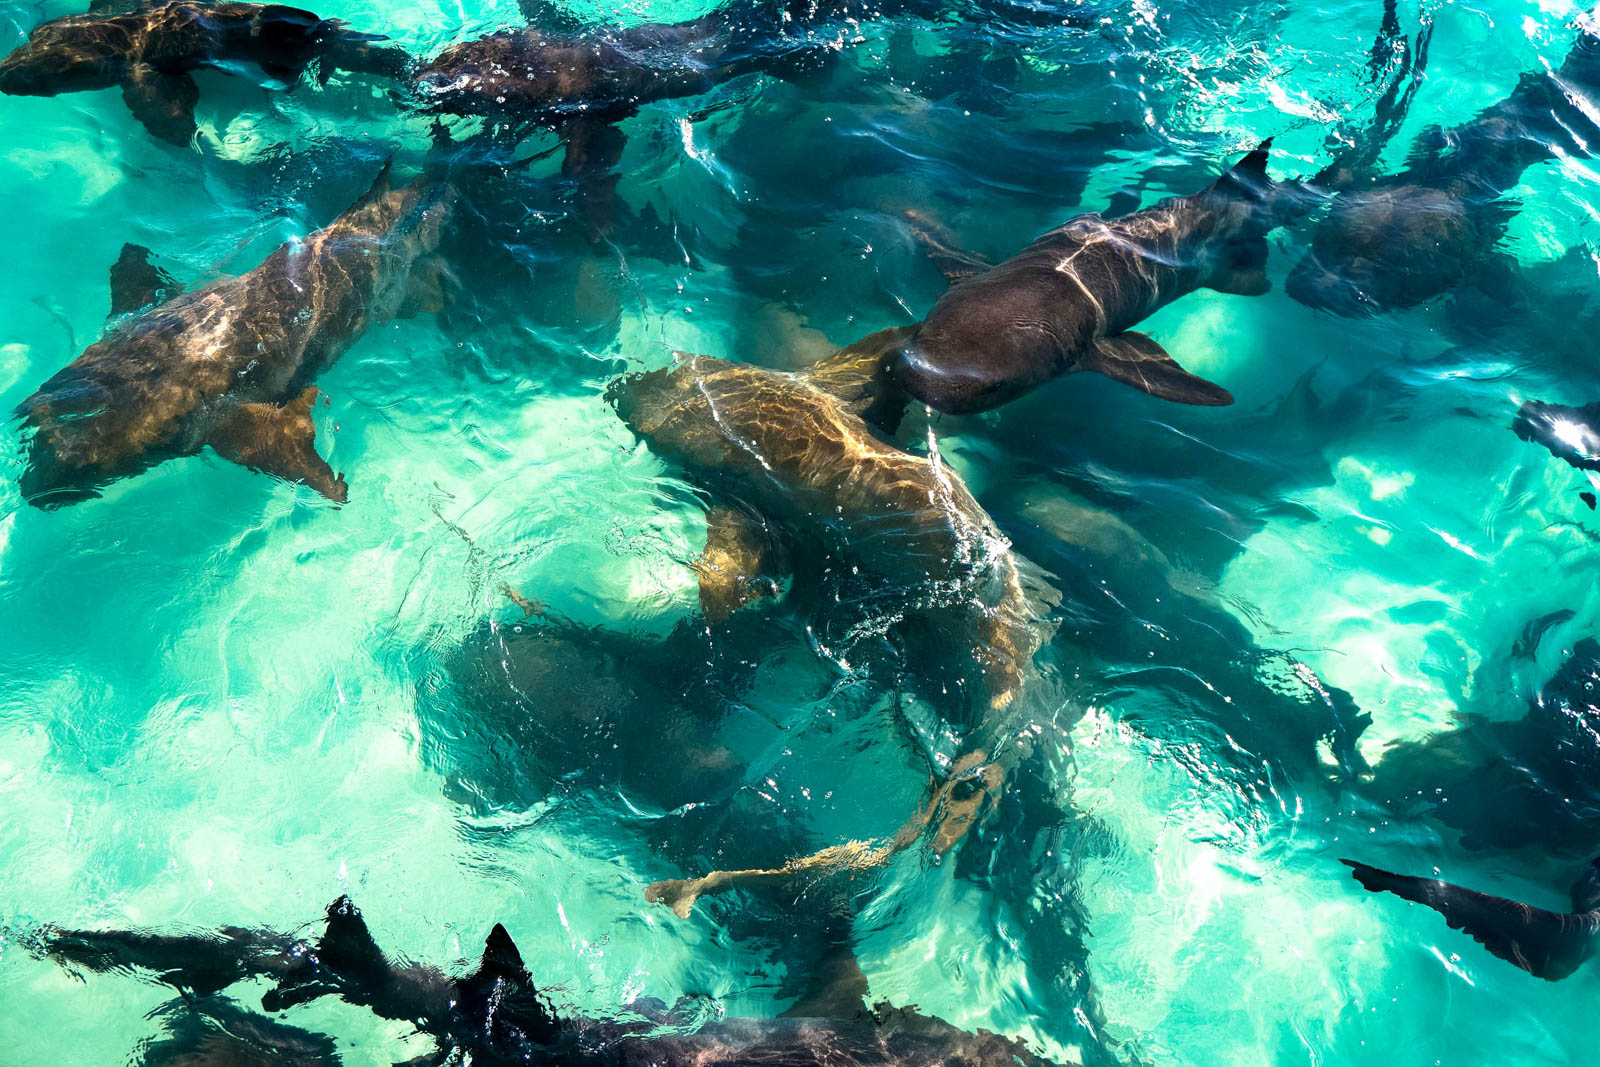 A Bahamas day trip is among the many things to do in Florida this weekend. Swim with Sharks at Compass Cay and see one of the besst things to do in Florida vacation.